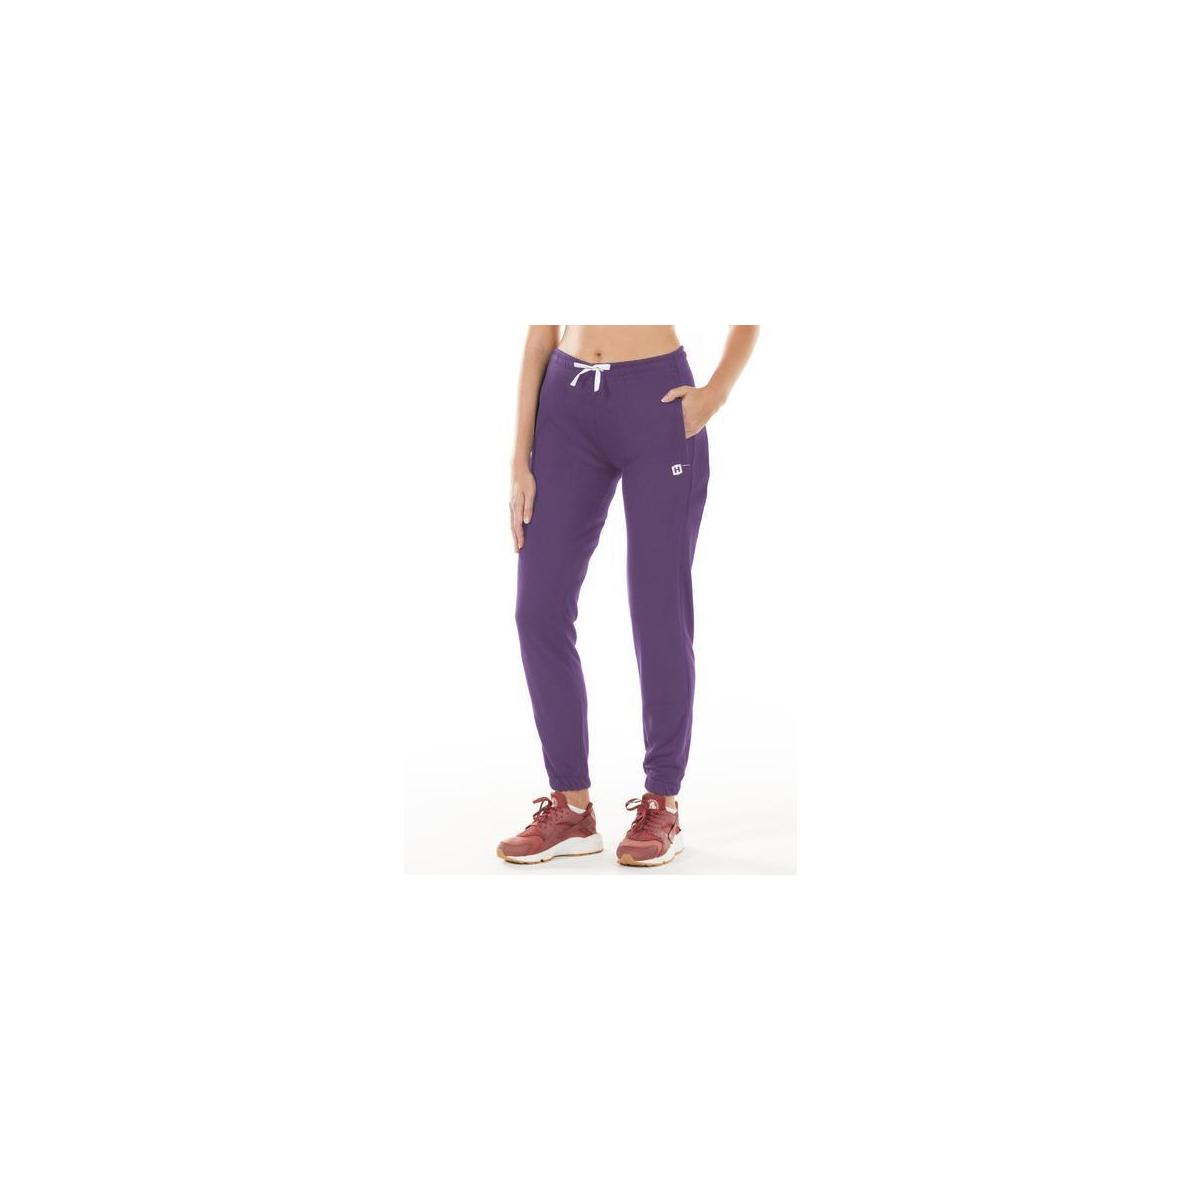 Womens Sweatpants with Pockets (All Colors: Black, Heather, Navy, Dark Red, Smoked, Blue, Purple, Green)